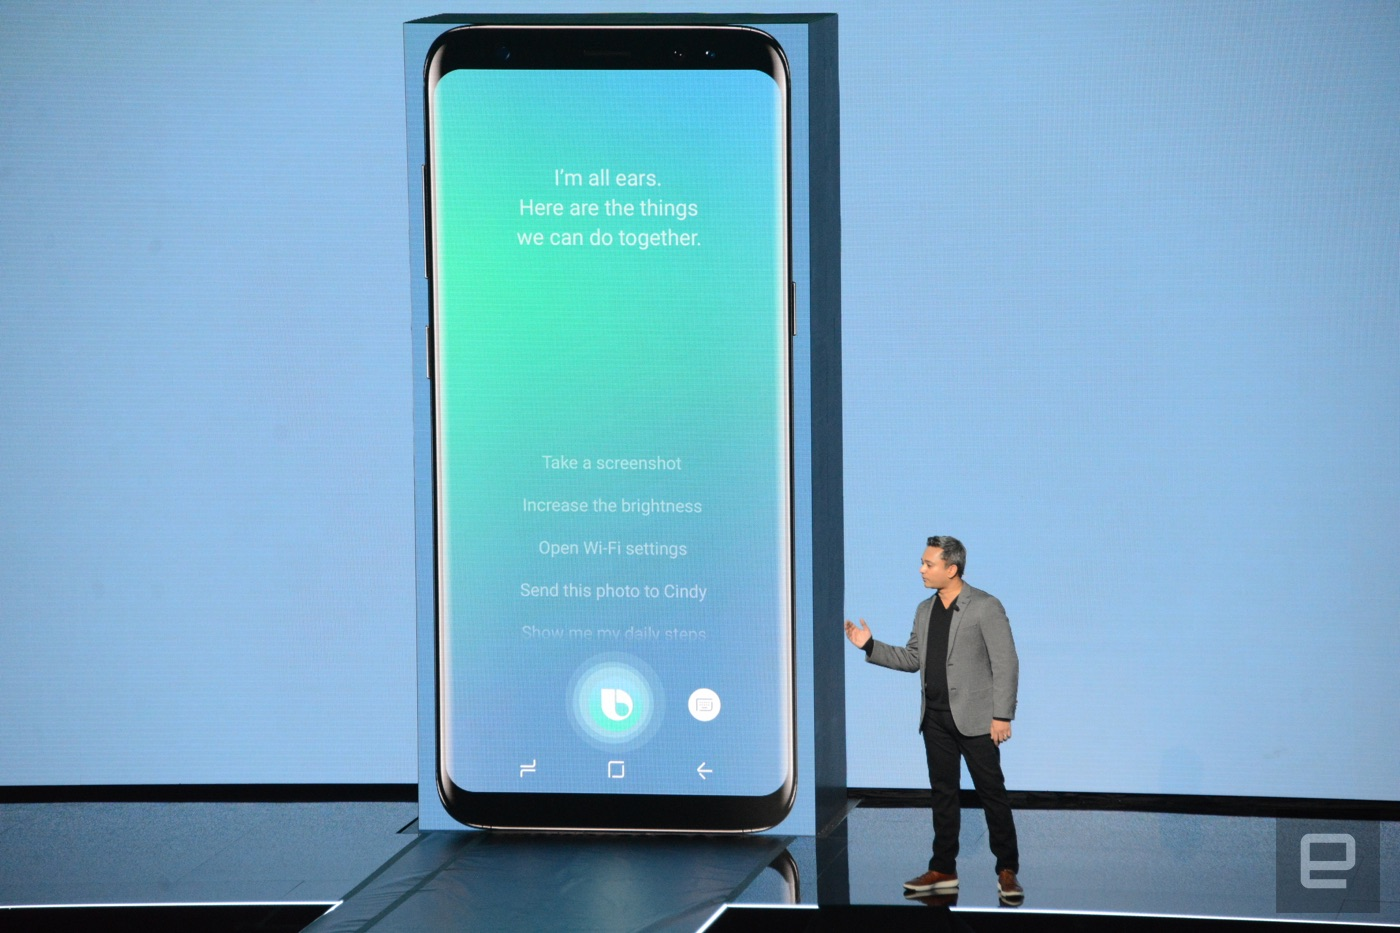 Samsung's Bixby AI assistant can see as well as talk